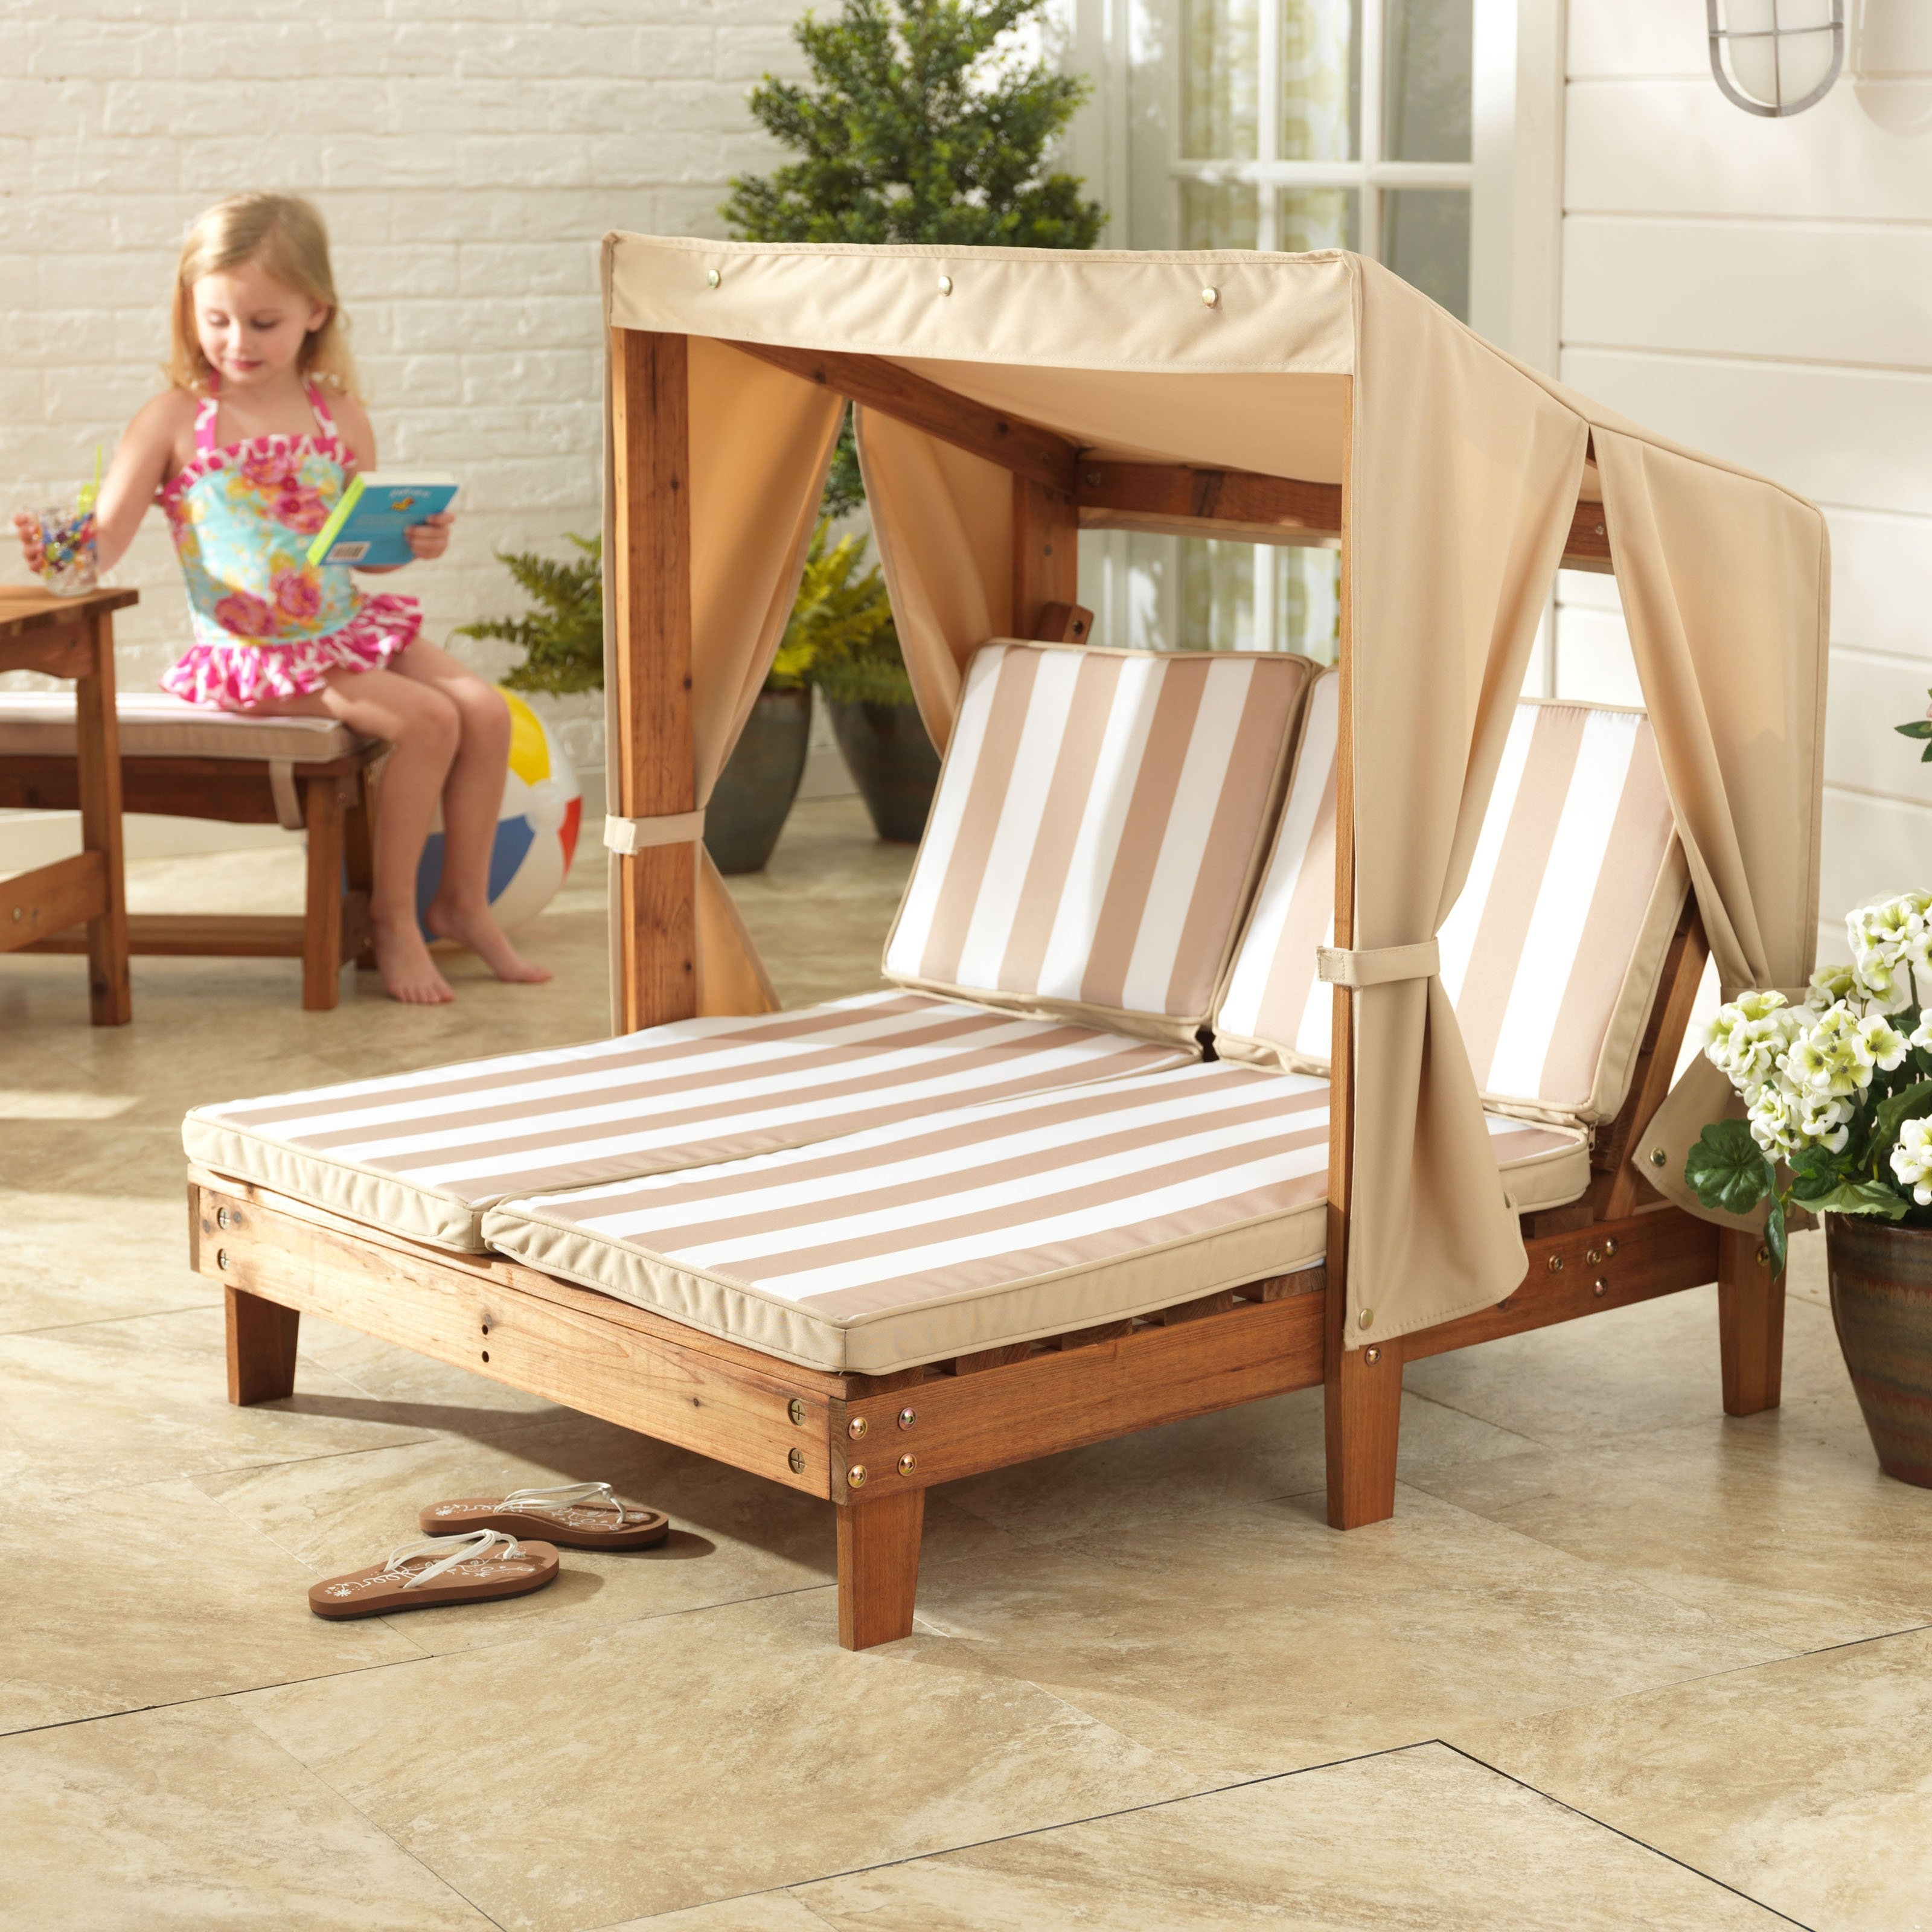 Most Popular Kids Chaise Lounges In Kidkraft Double Chaise Chair – 502 – Walmart (View 14 of 15)